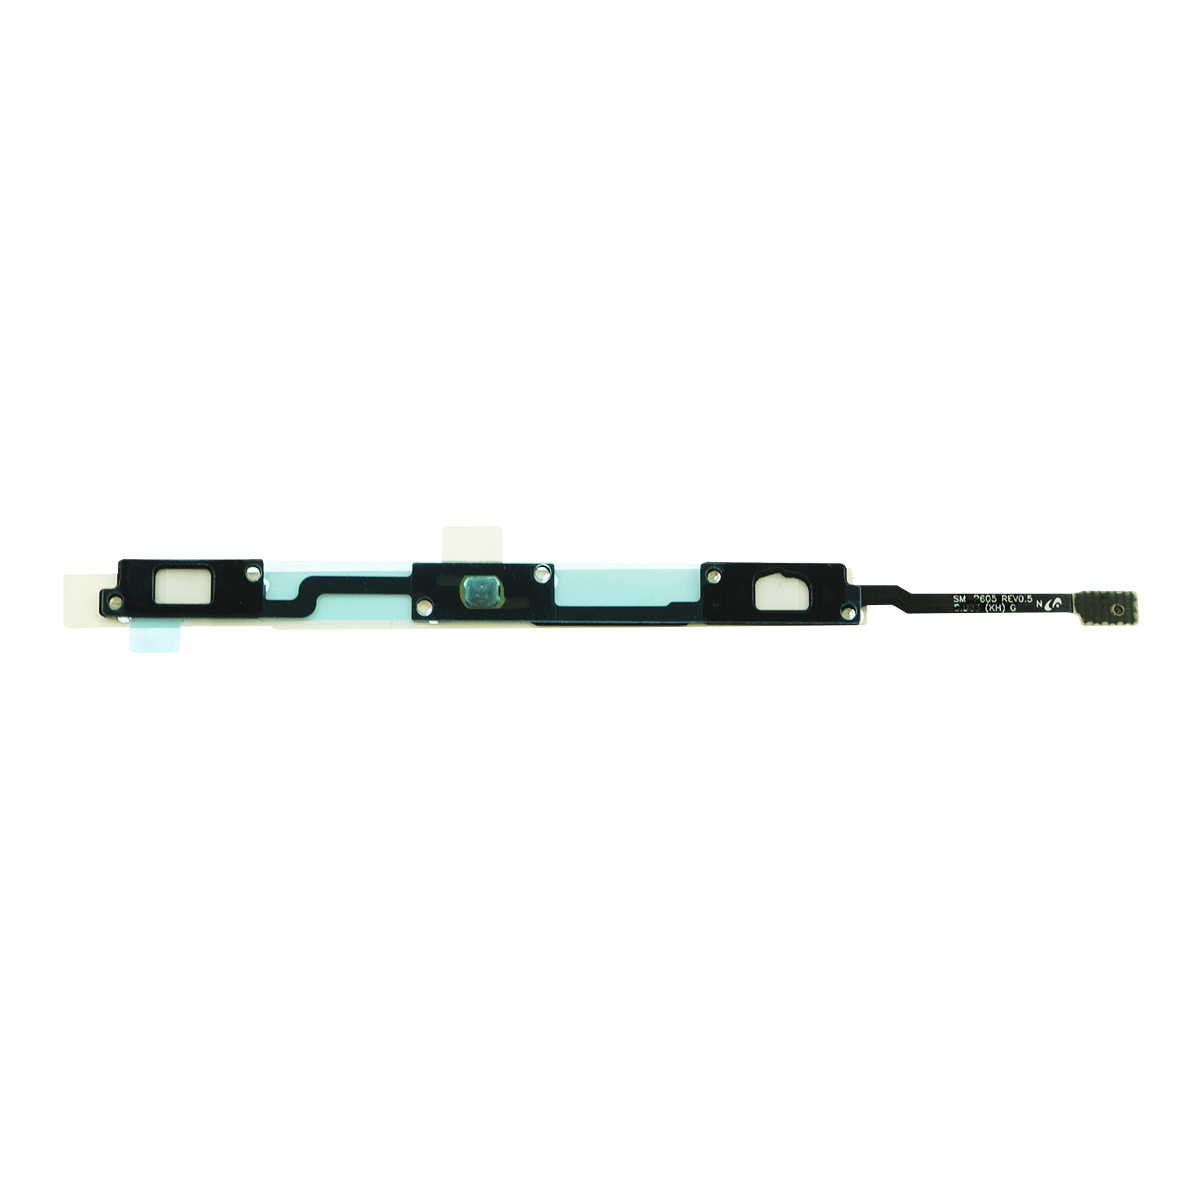 Samsung Galaxy Note 10.1 SM-P600 Home Button Flex Cable